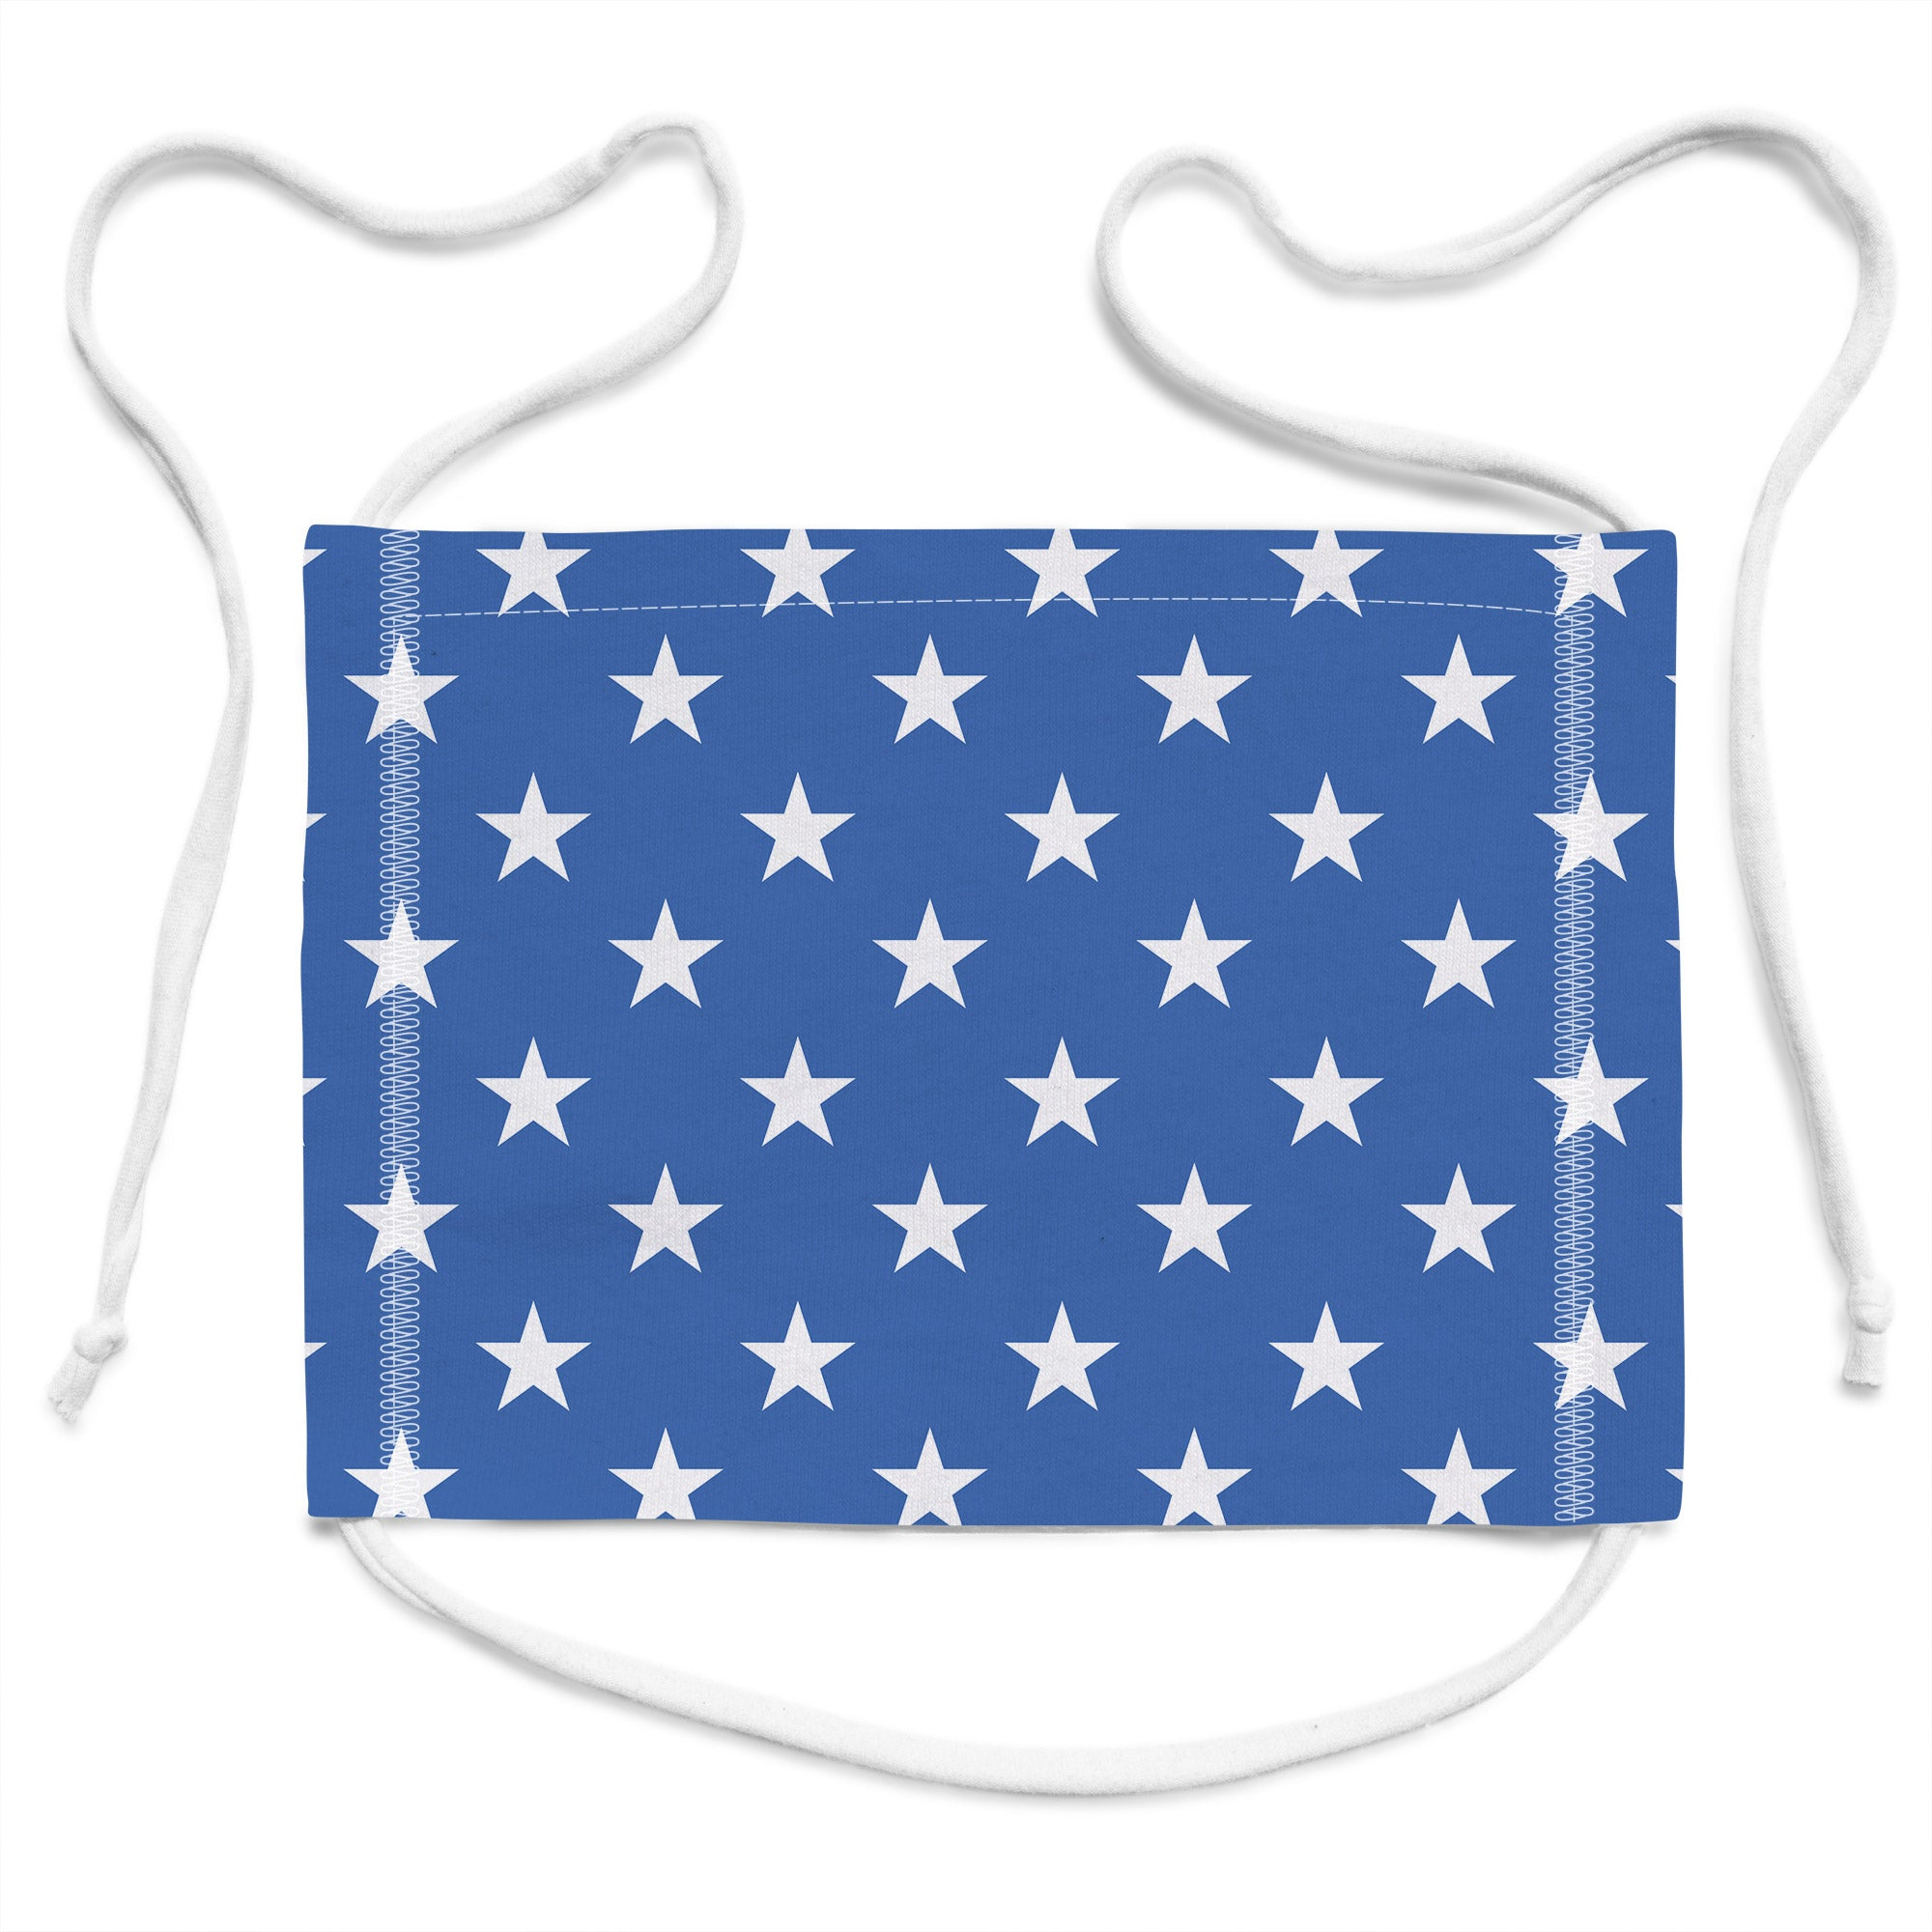 CHEAP Blue Stars Face Mask 26660545803 – Clothing Accessories